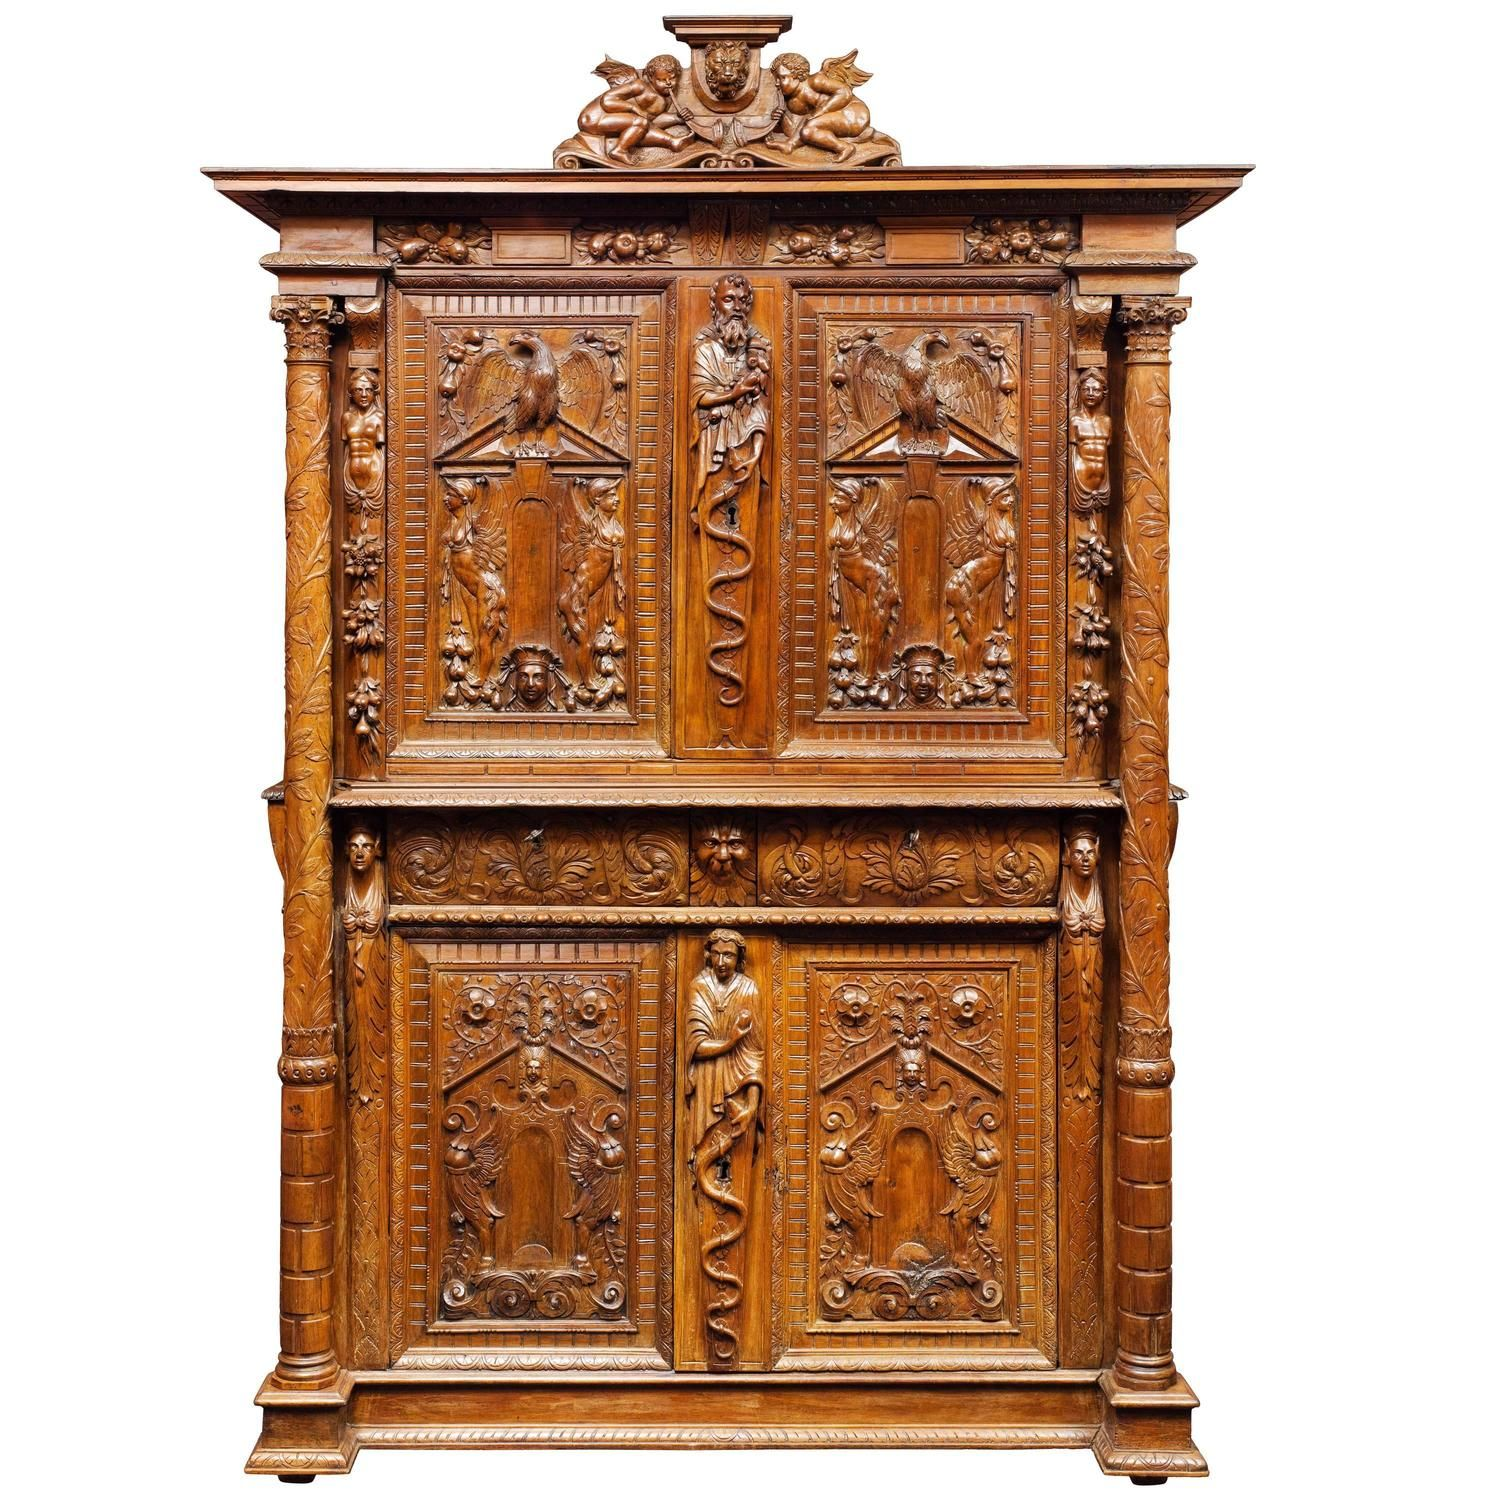 French baroque furniture - French Walnut Renaissance Cabinet 16th Century